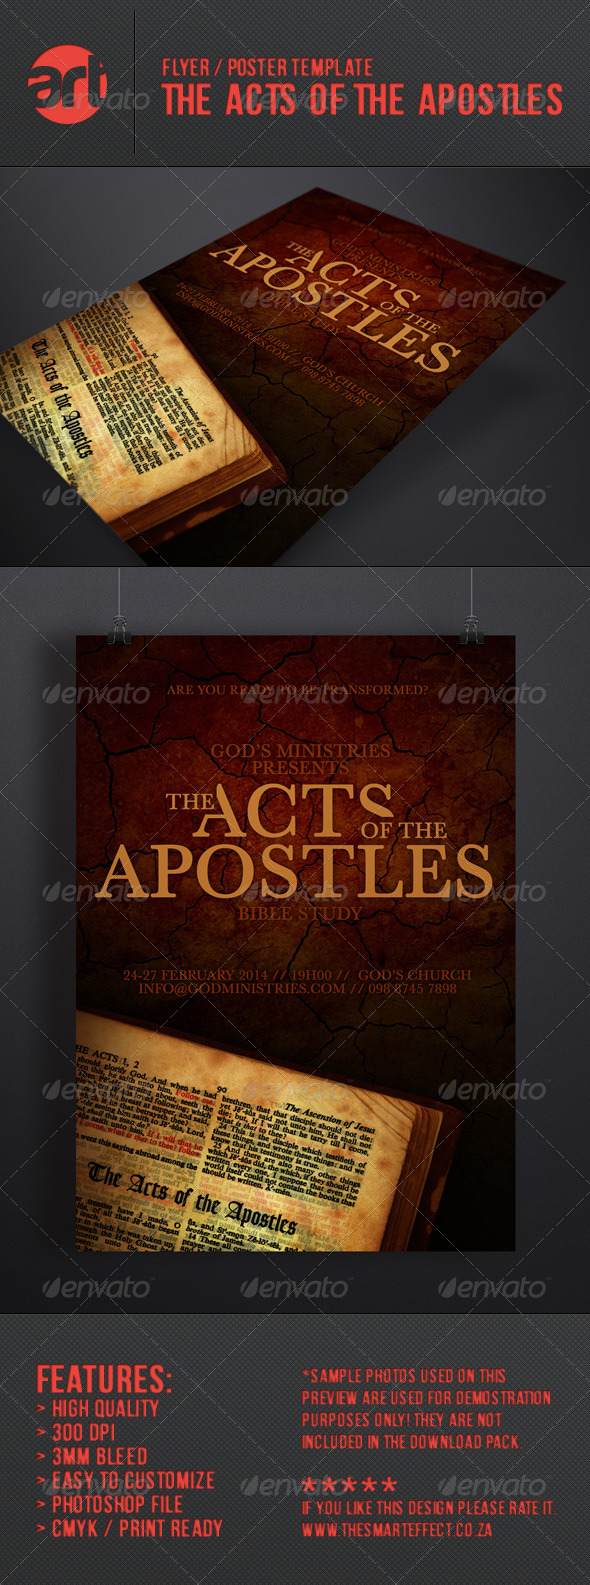 The Acts of the Apostles Flyer/Poster - Church Flyers